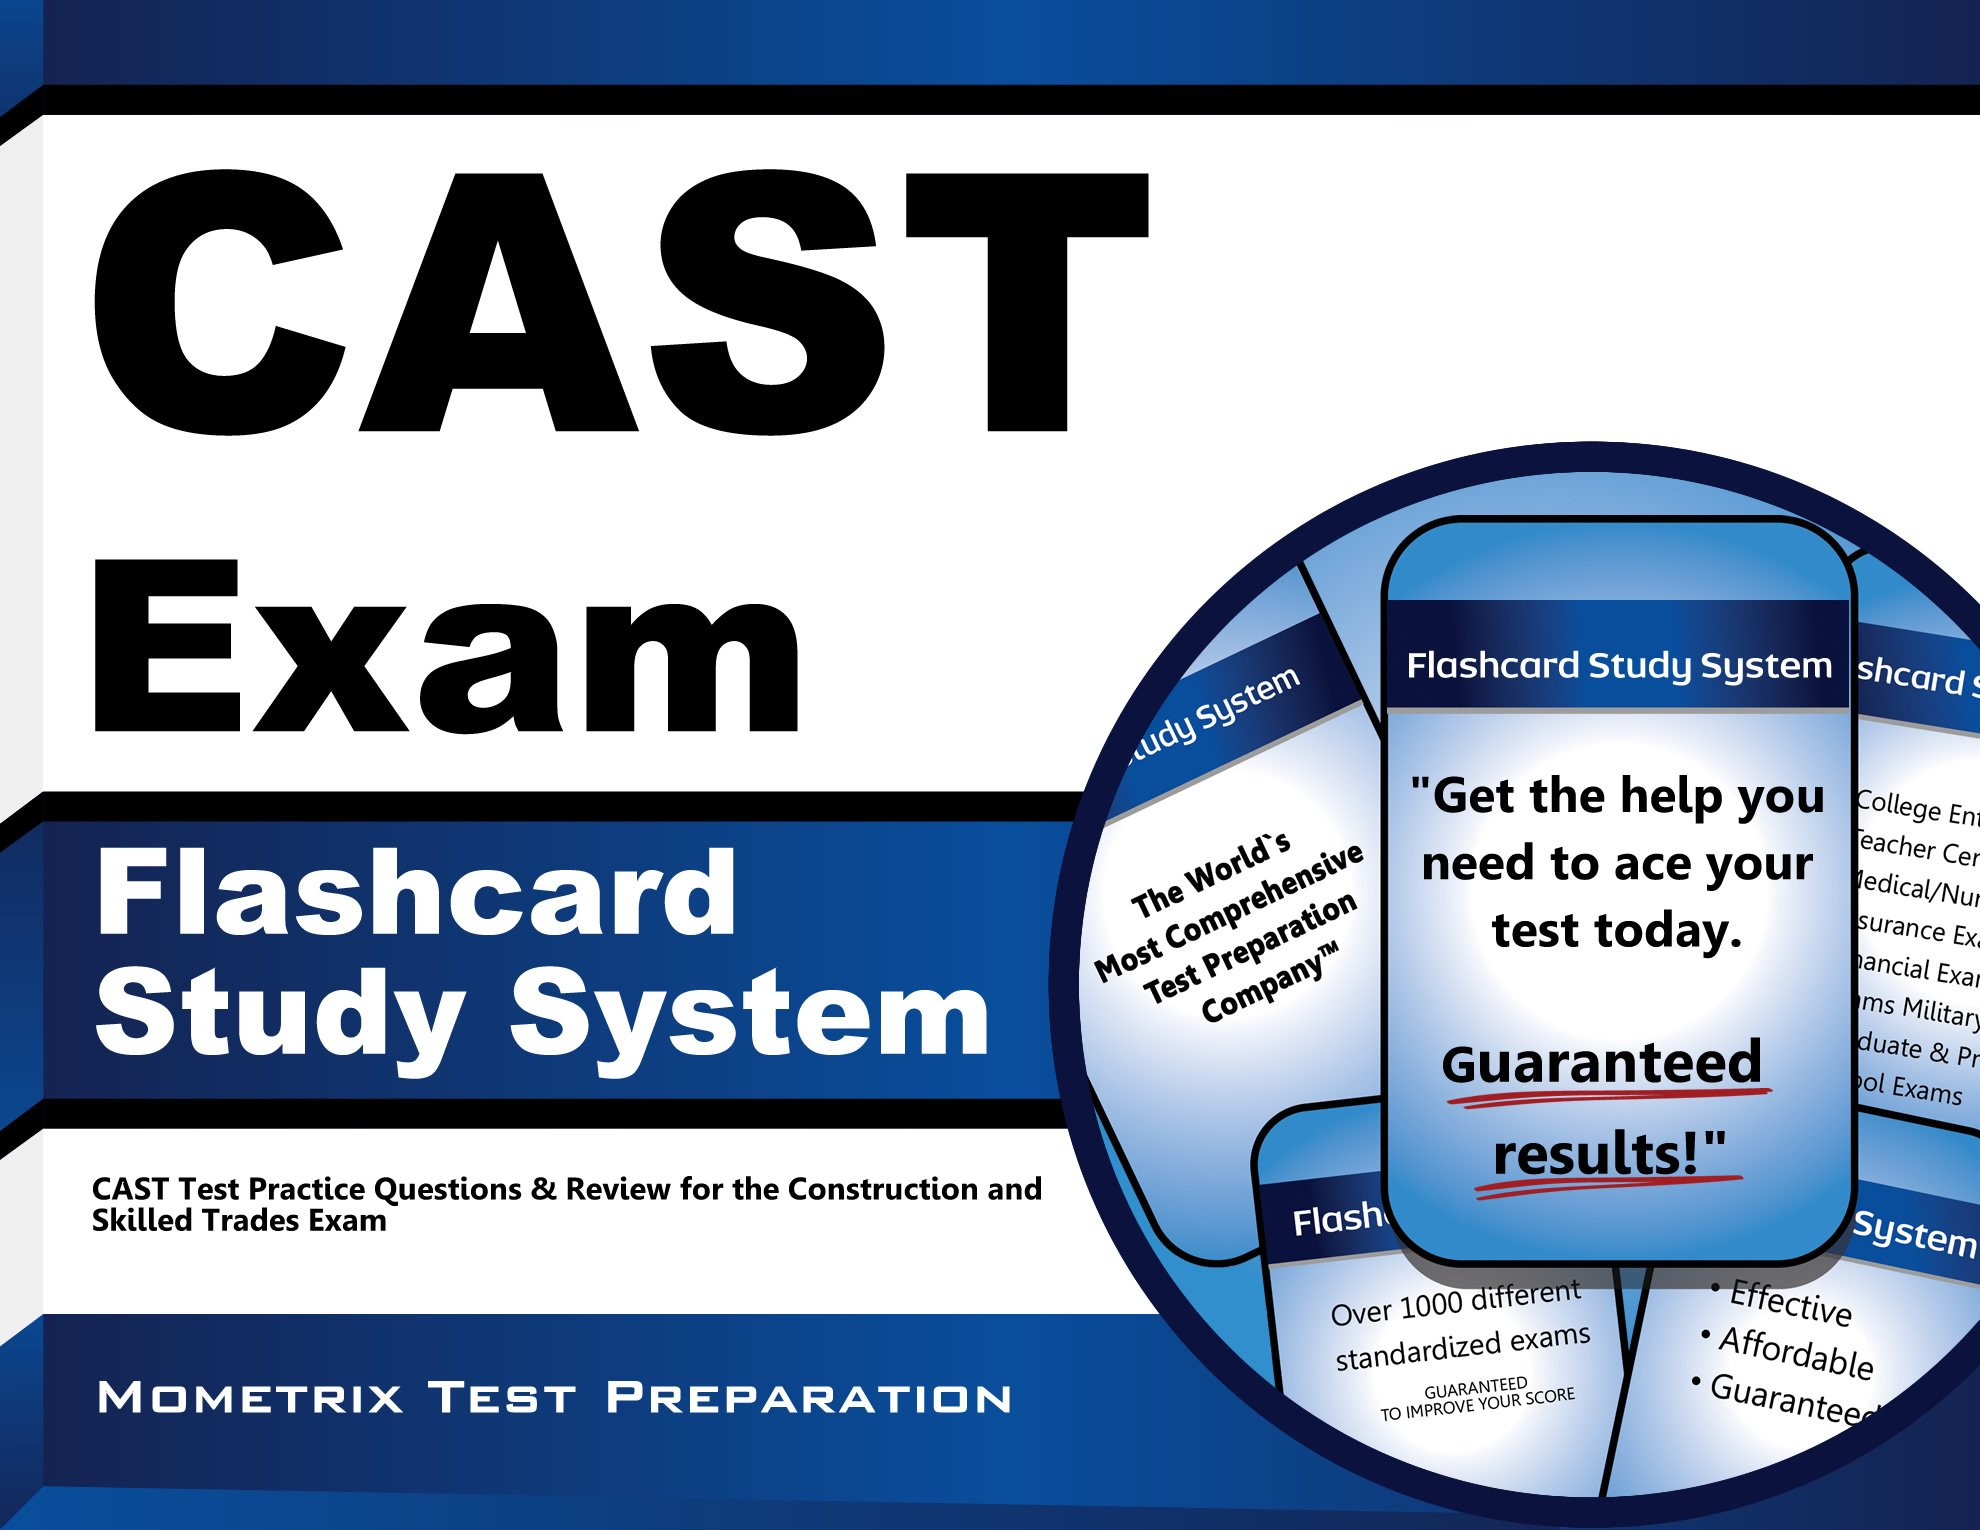 Download CAST Exam Flashcard Study System: CAST Test Practice Questions & Review for the Construction and Skilled Trades Exam pdf